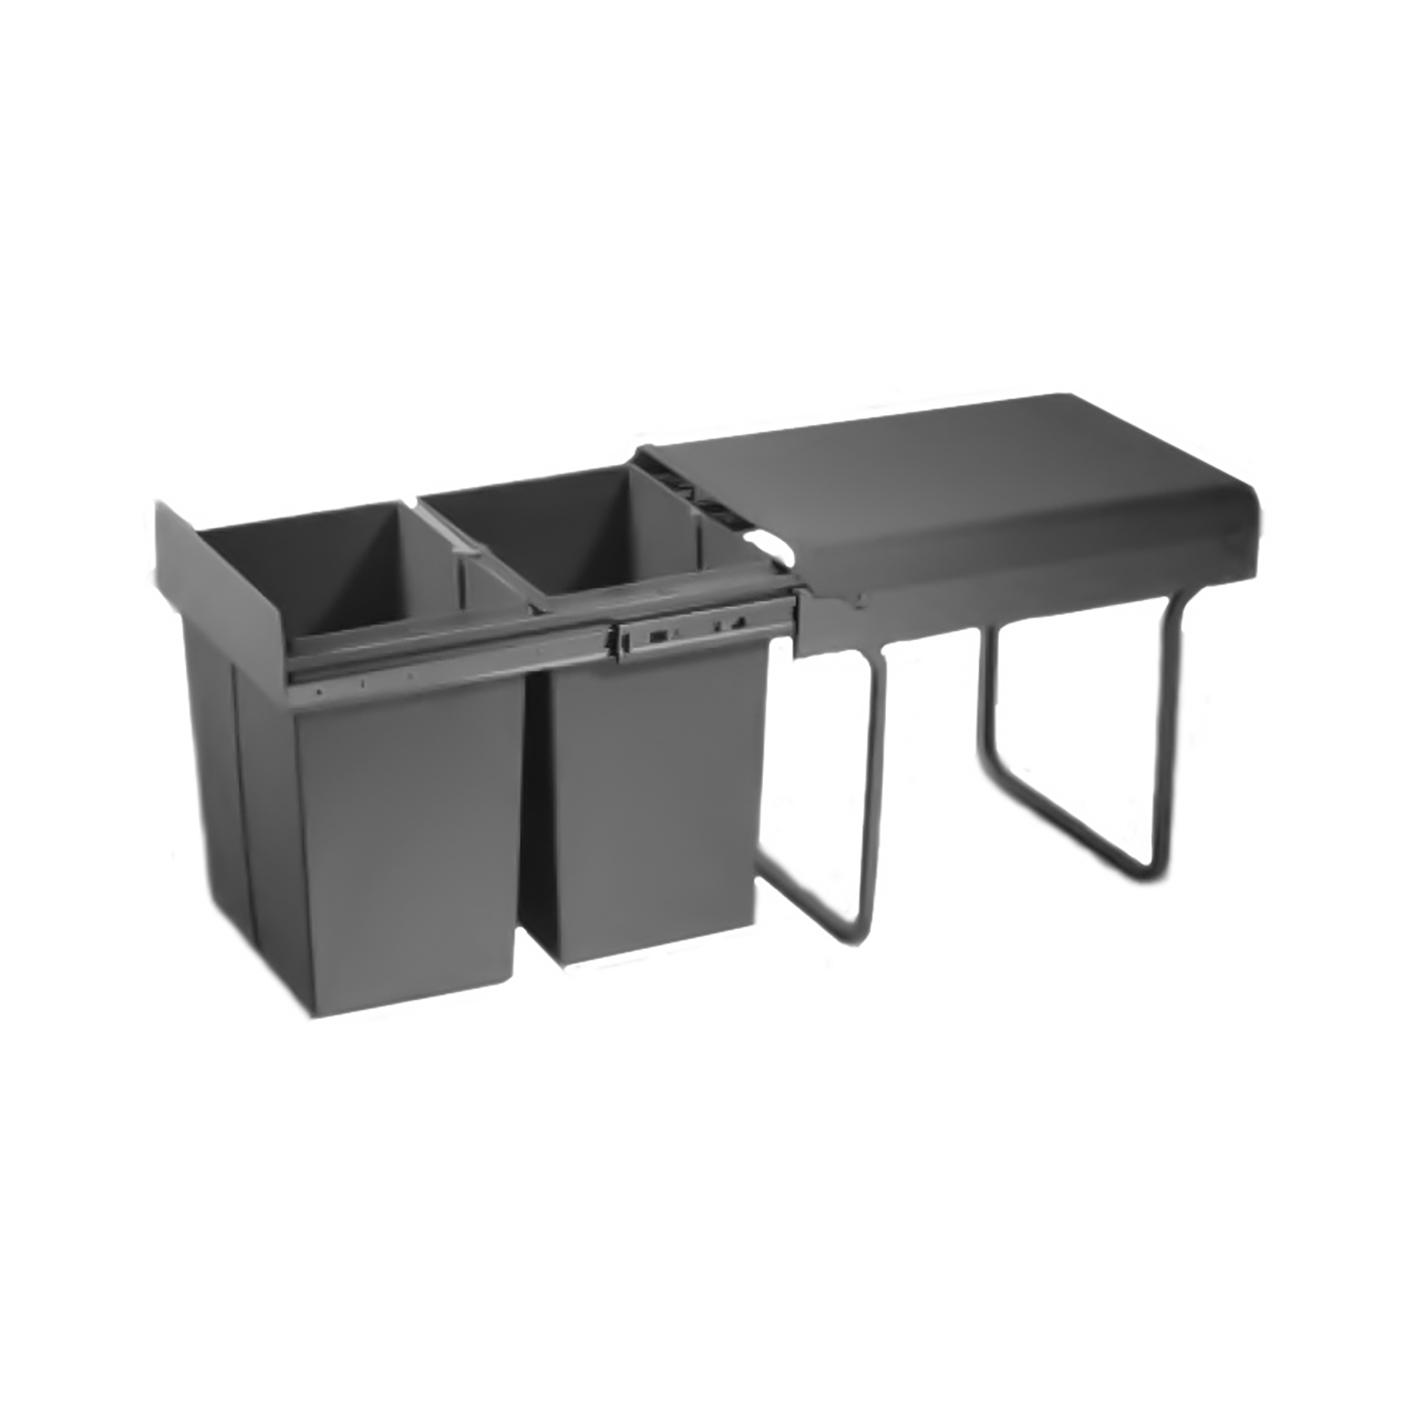 Waste Bin Pull Out  - 2 bin